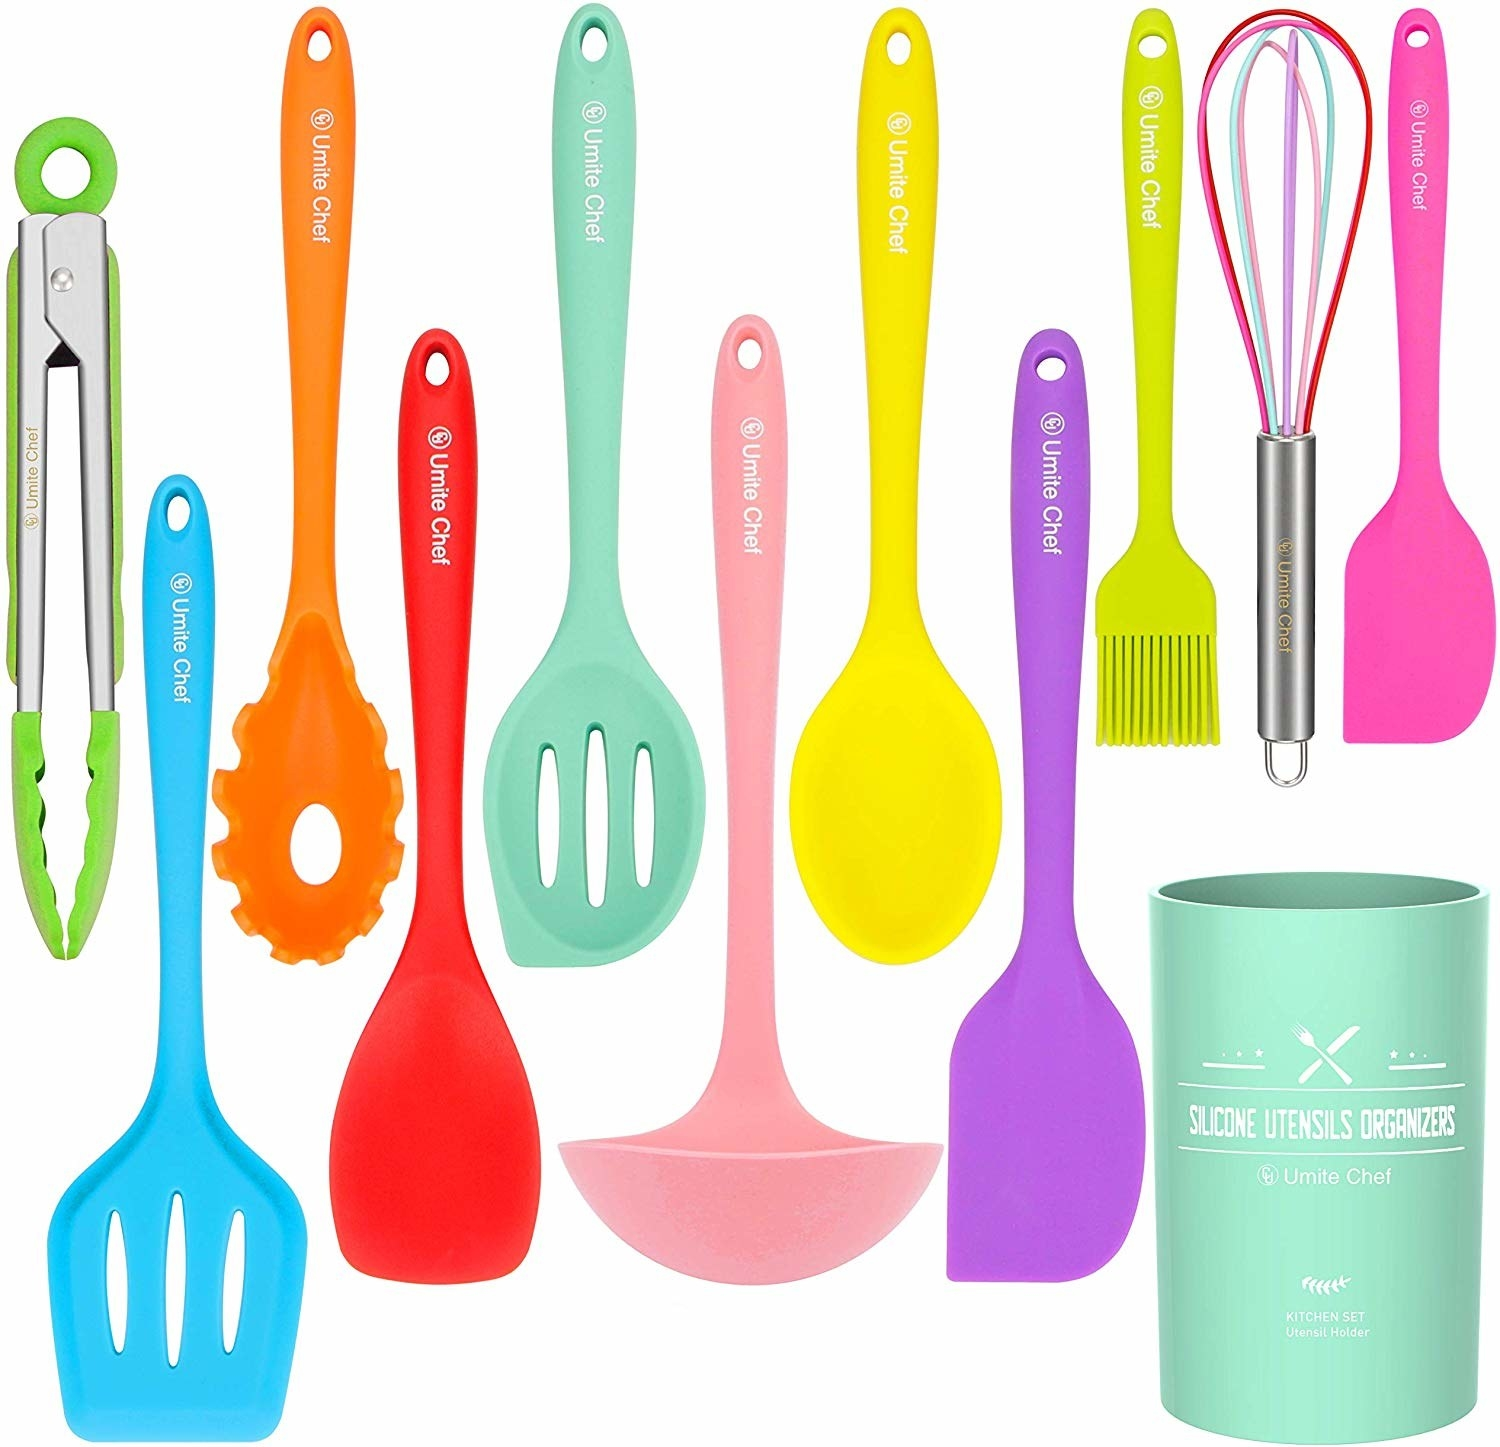 the colorful utensils